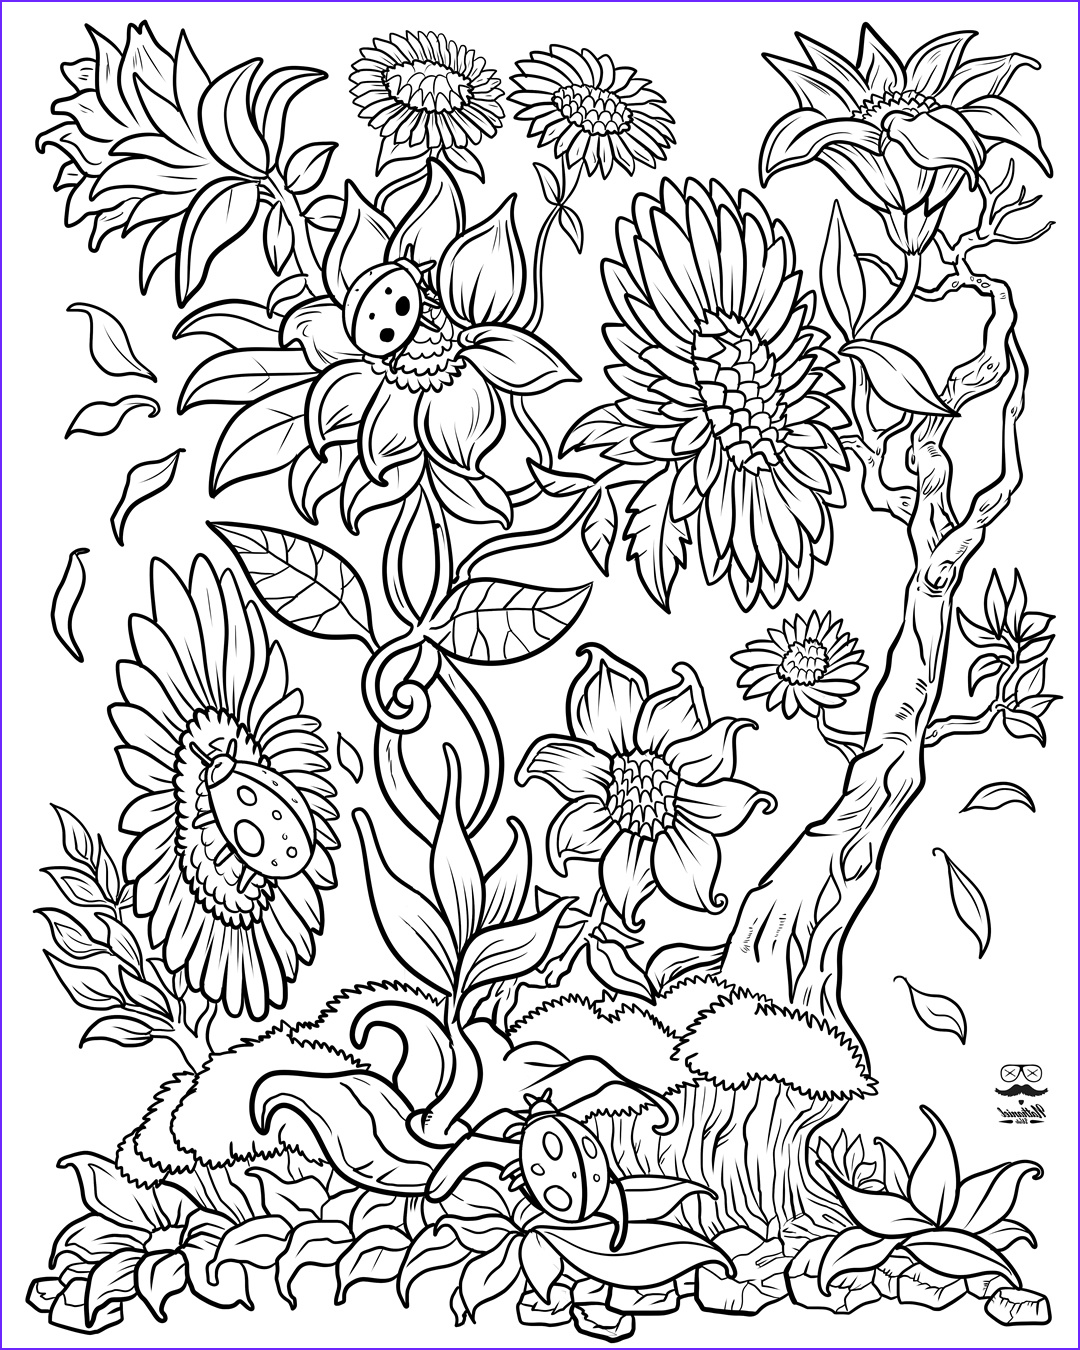 Adult Coloring Pages Flowers Awesome Photos Floral Fantasy Digital Version Adult Coloring Book